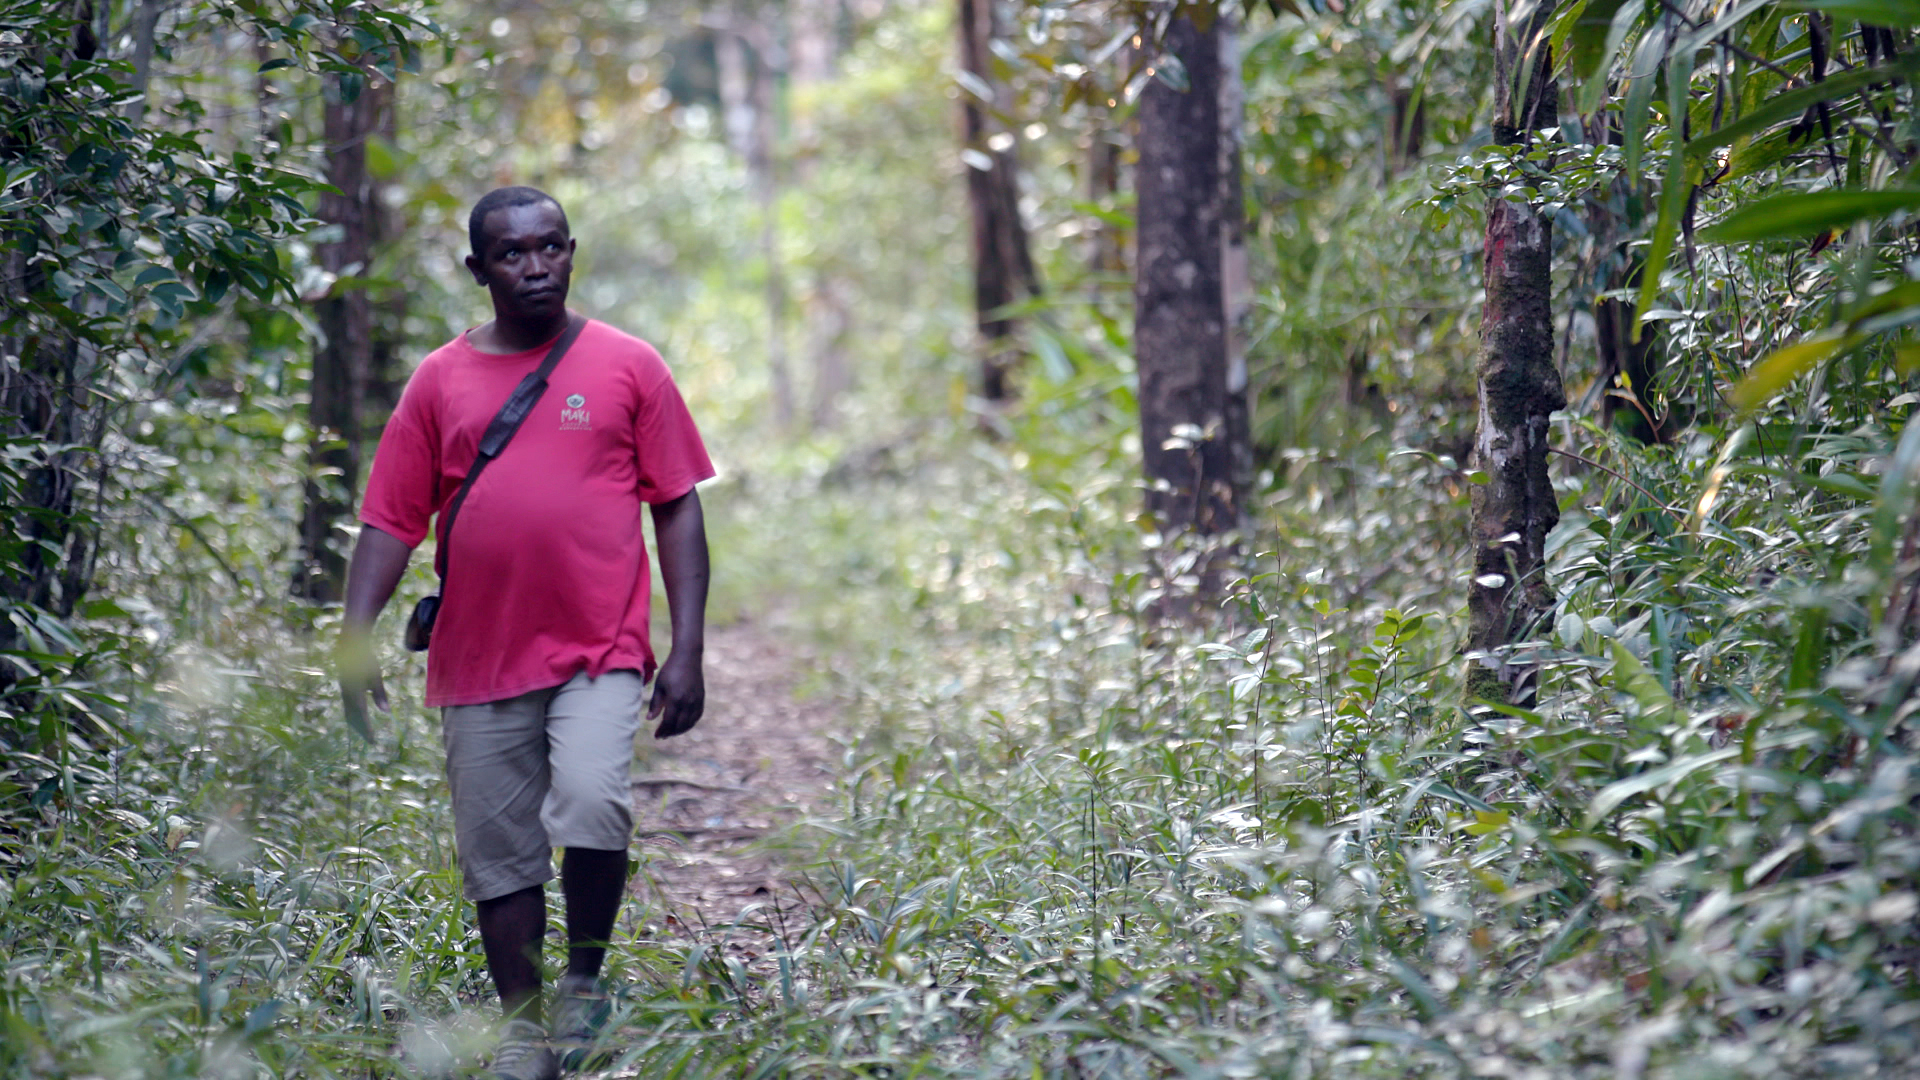 Clovis Razafimalala walking in a forest